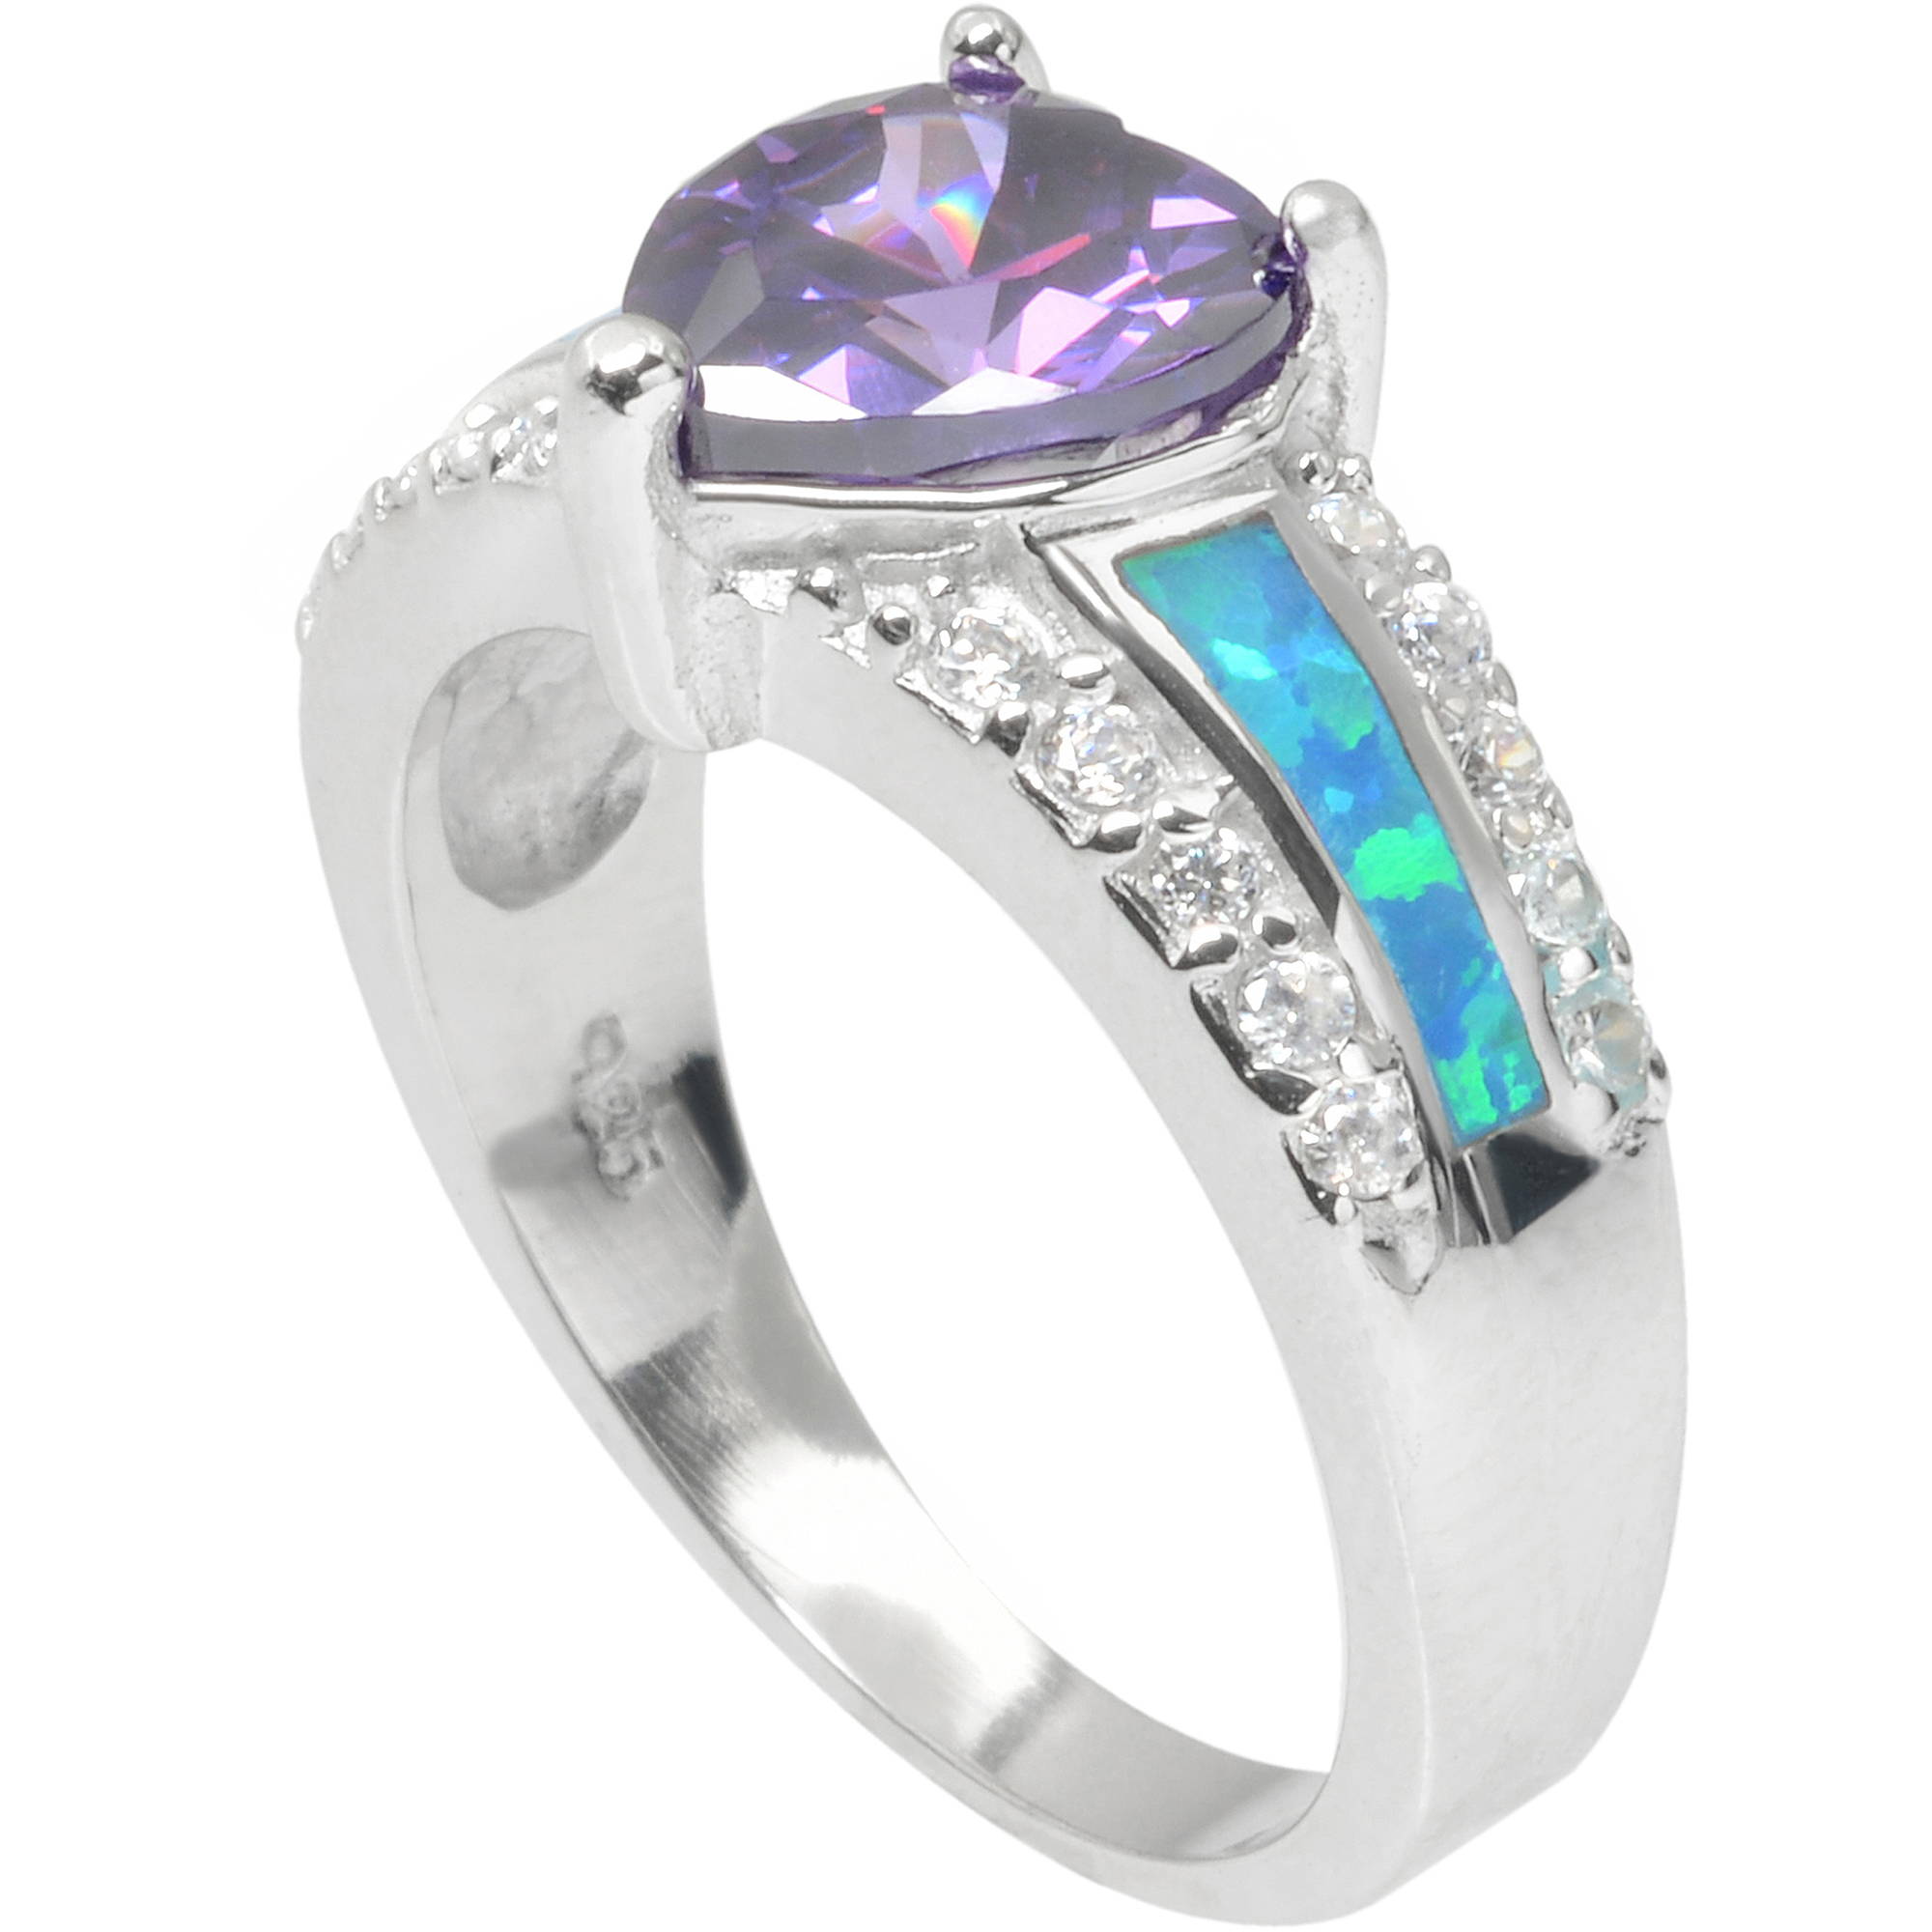 Alexandria Collection Sterling Silver1-1/2 Carat T.G.W. Heart Cubic Zirconia Heart Ring